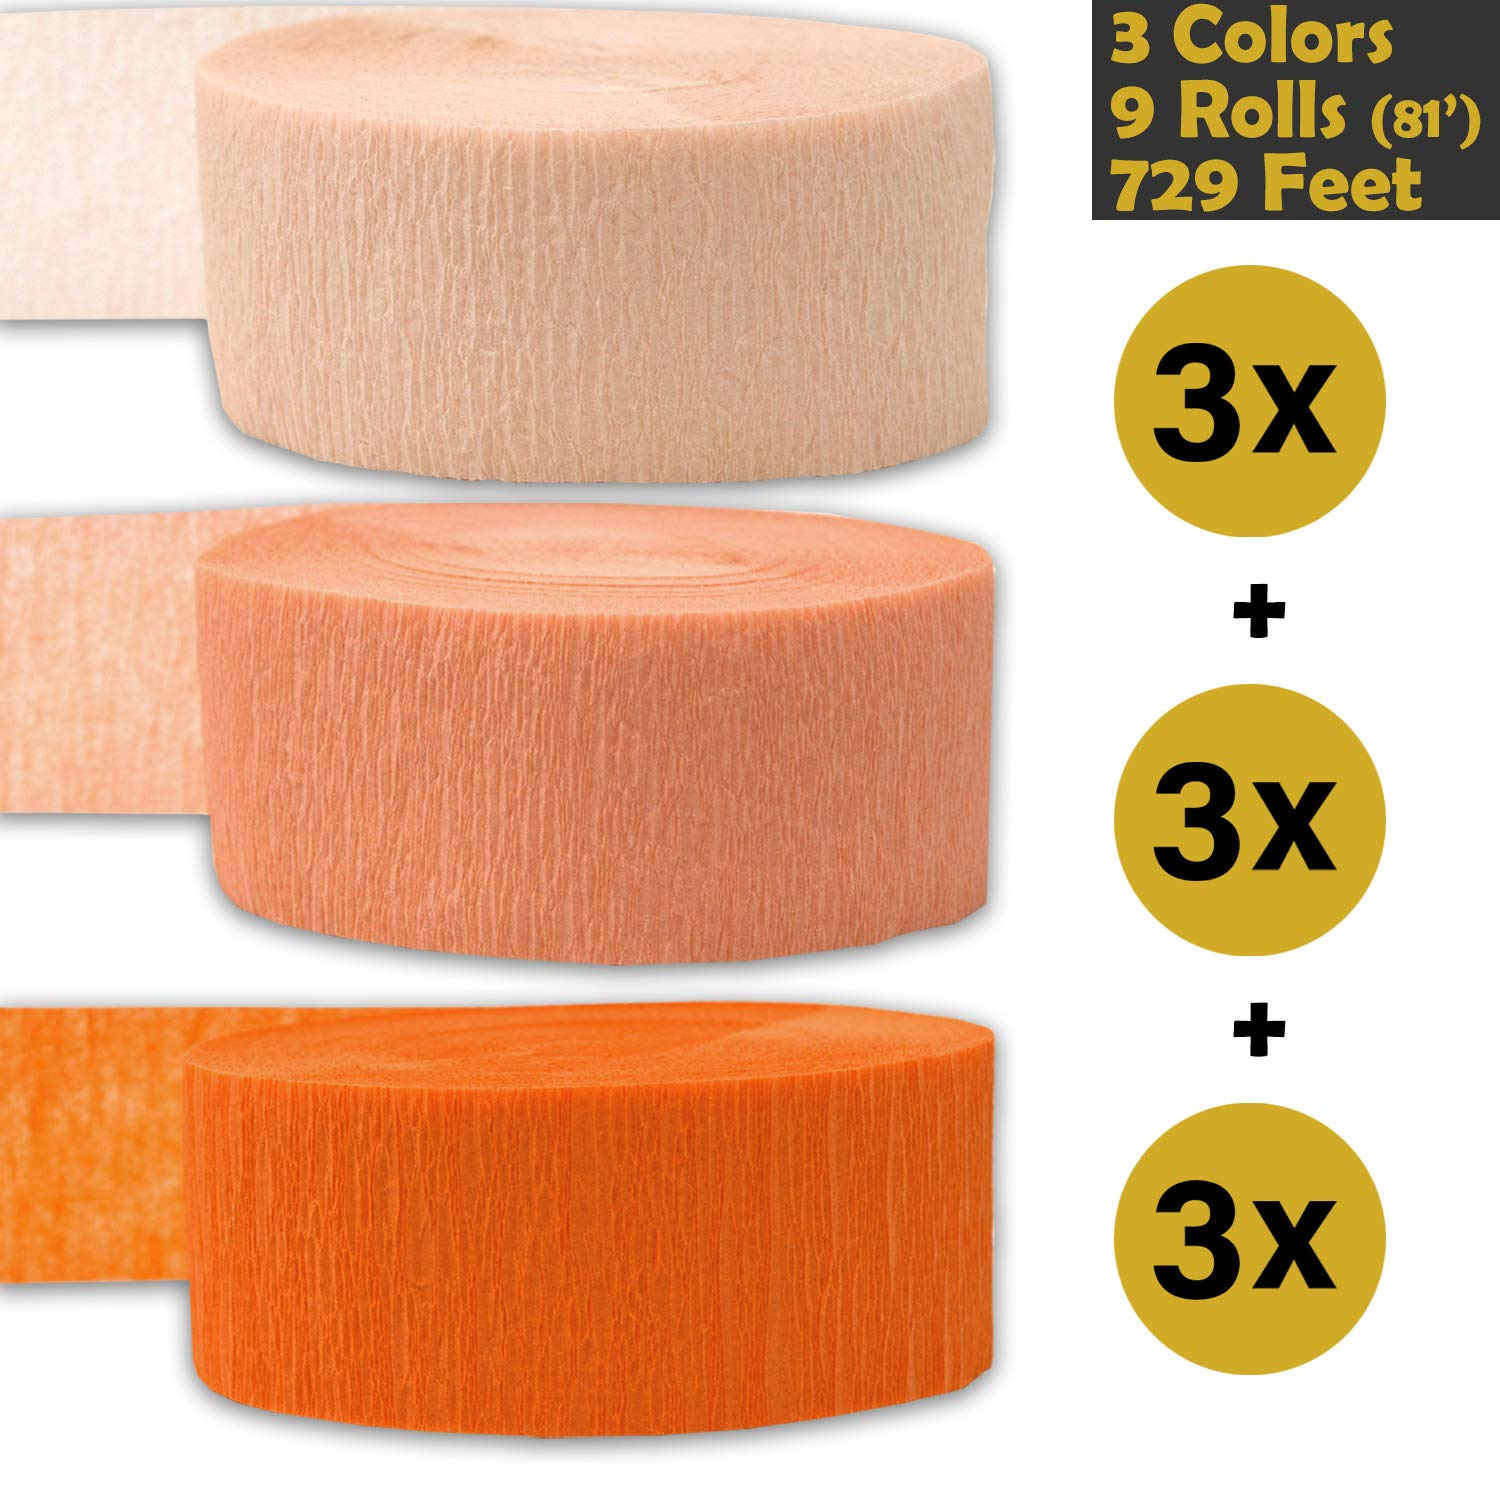 Flame Resistant 3 Colors 3 rolls per color, 81 foot each roll Whisper Pink Peach 739 ft Made in USA Bleed Resistant - For party Decorations and Crafts 243 per color Crepe Party Streamers 9 rolls Orange